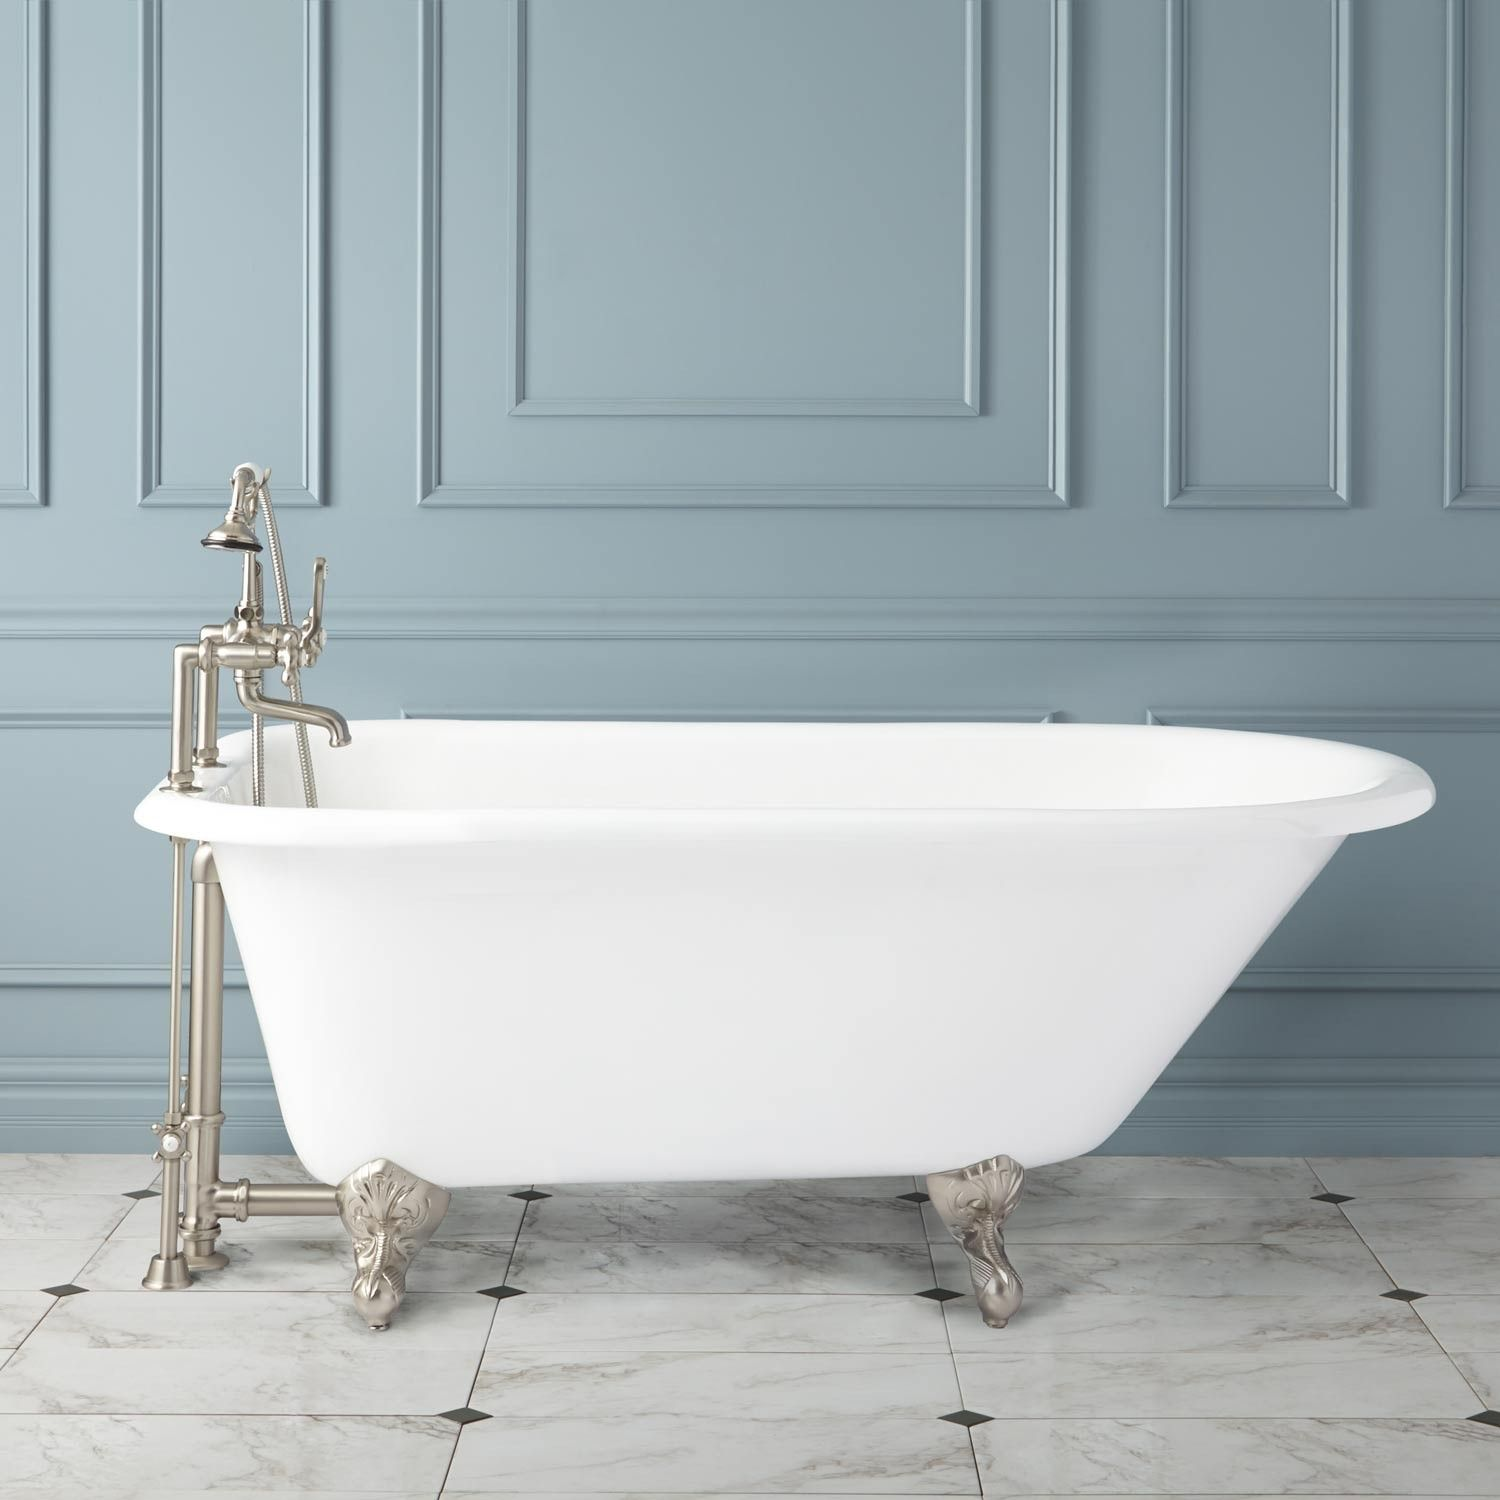 Celine Cast Iron Clawfoot Tub | Tubs, Iron and Bath